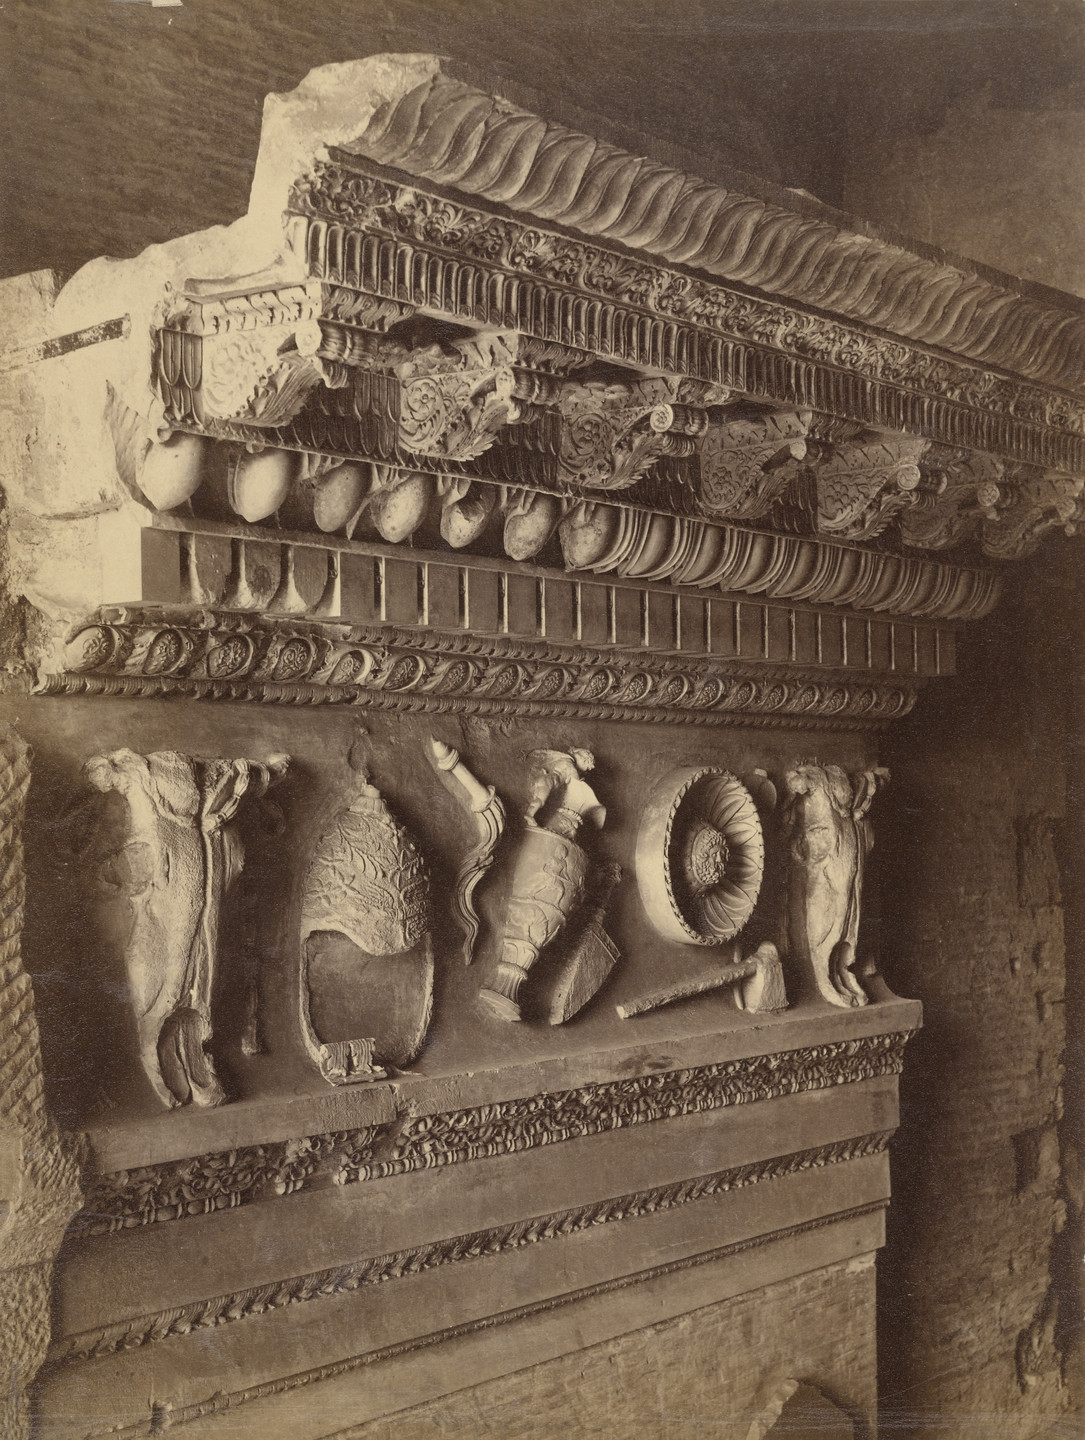 Louis-Auguste Bisson, Auguste-Rosalie Bisson. Detail of the Architrave of the Temple of Vespatian, Roman Forum, Rome. 1860s